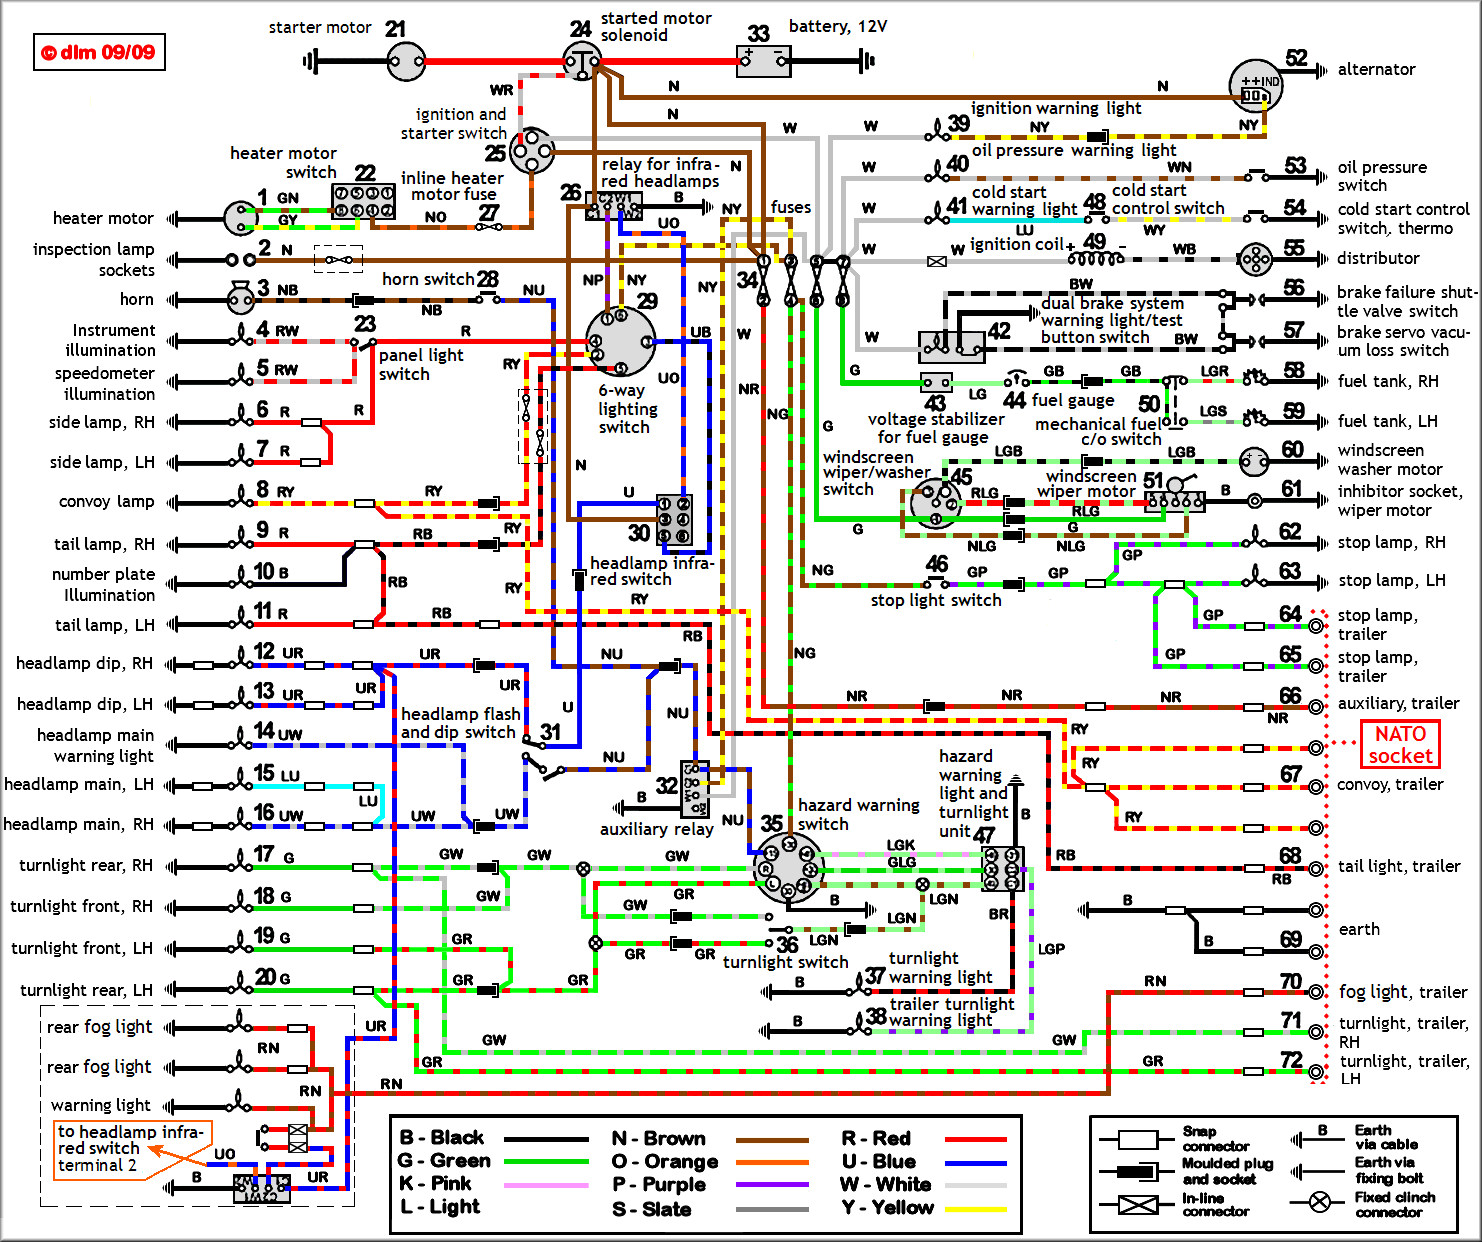 Wiring Diagram New land rover wiring diagram land rover radio wiring \u2022 free wiring rover 25 wiring diagram pdf at reclaimingppi.co